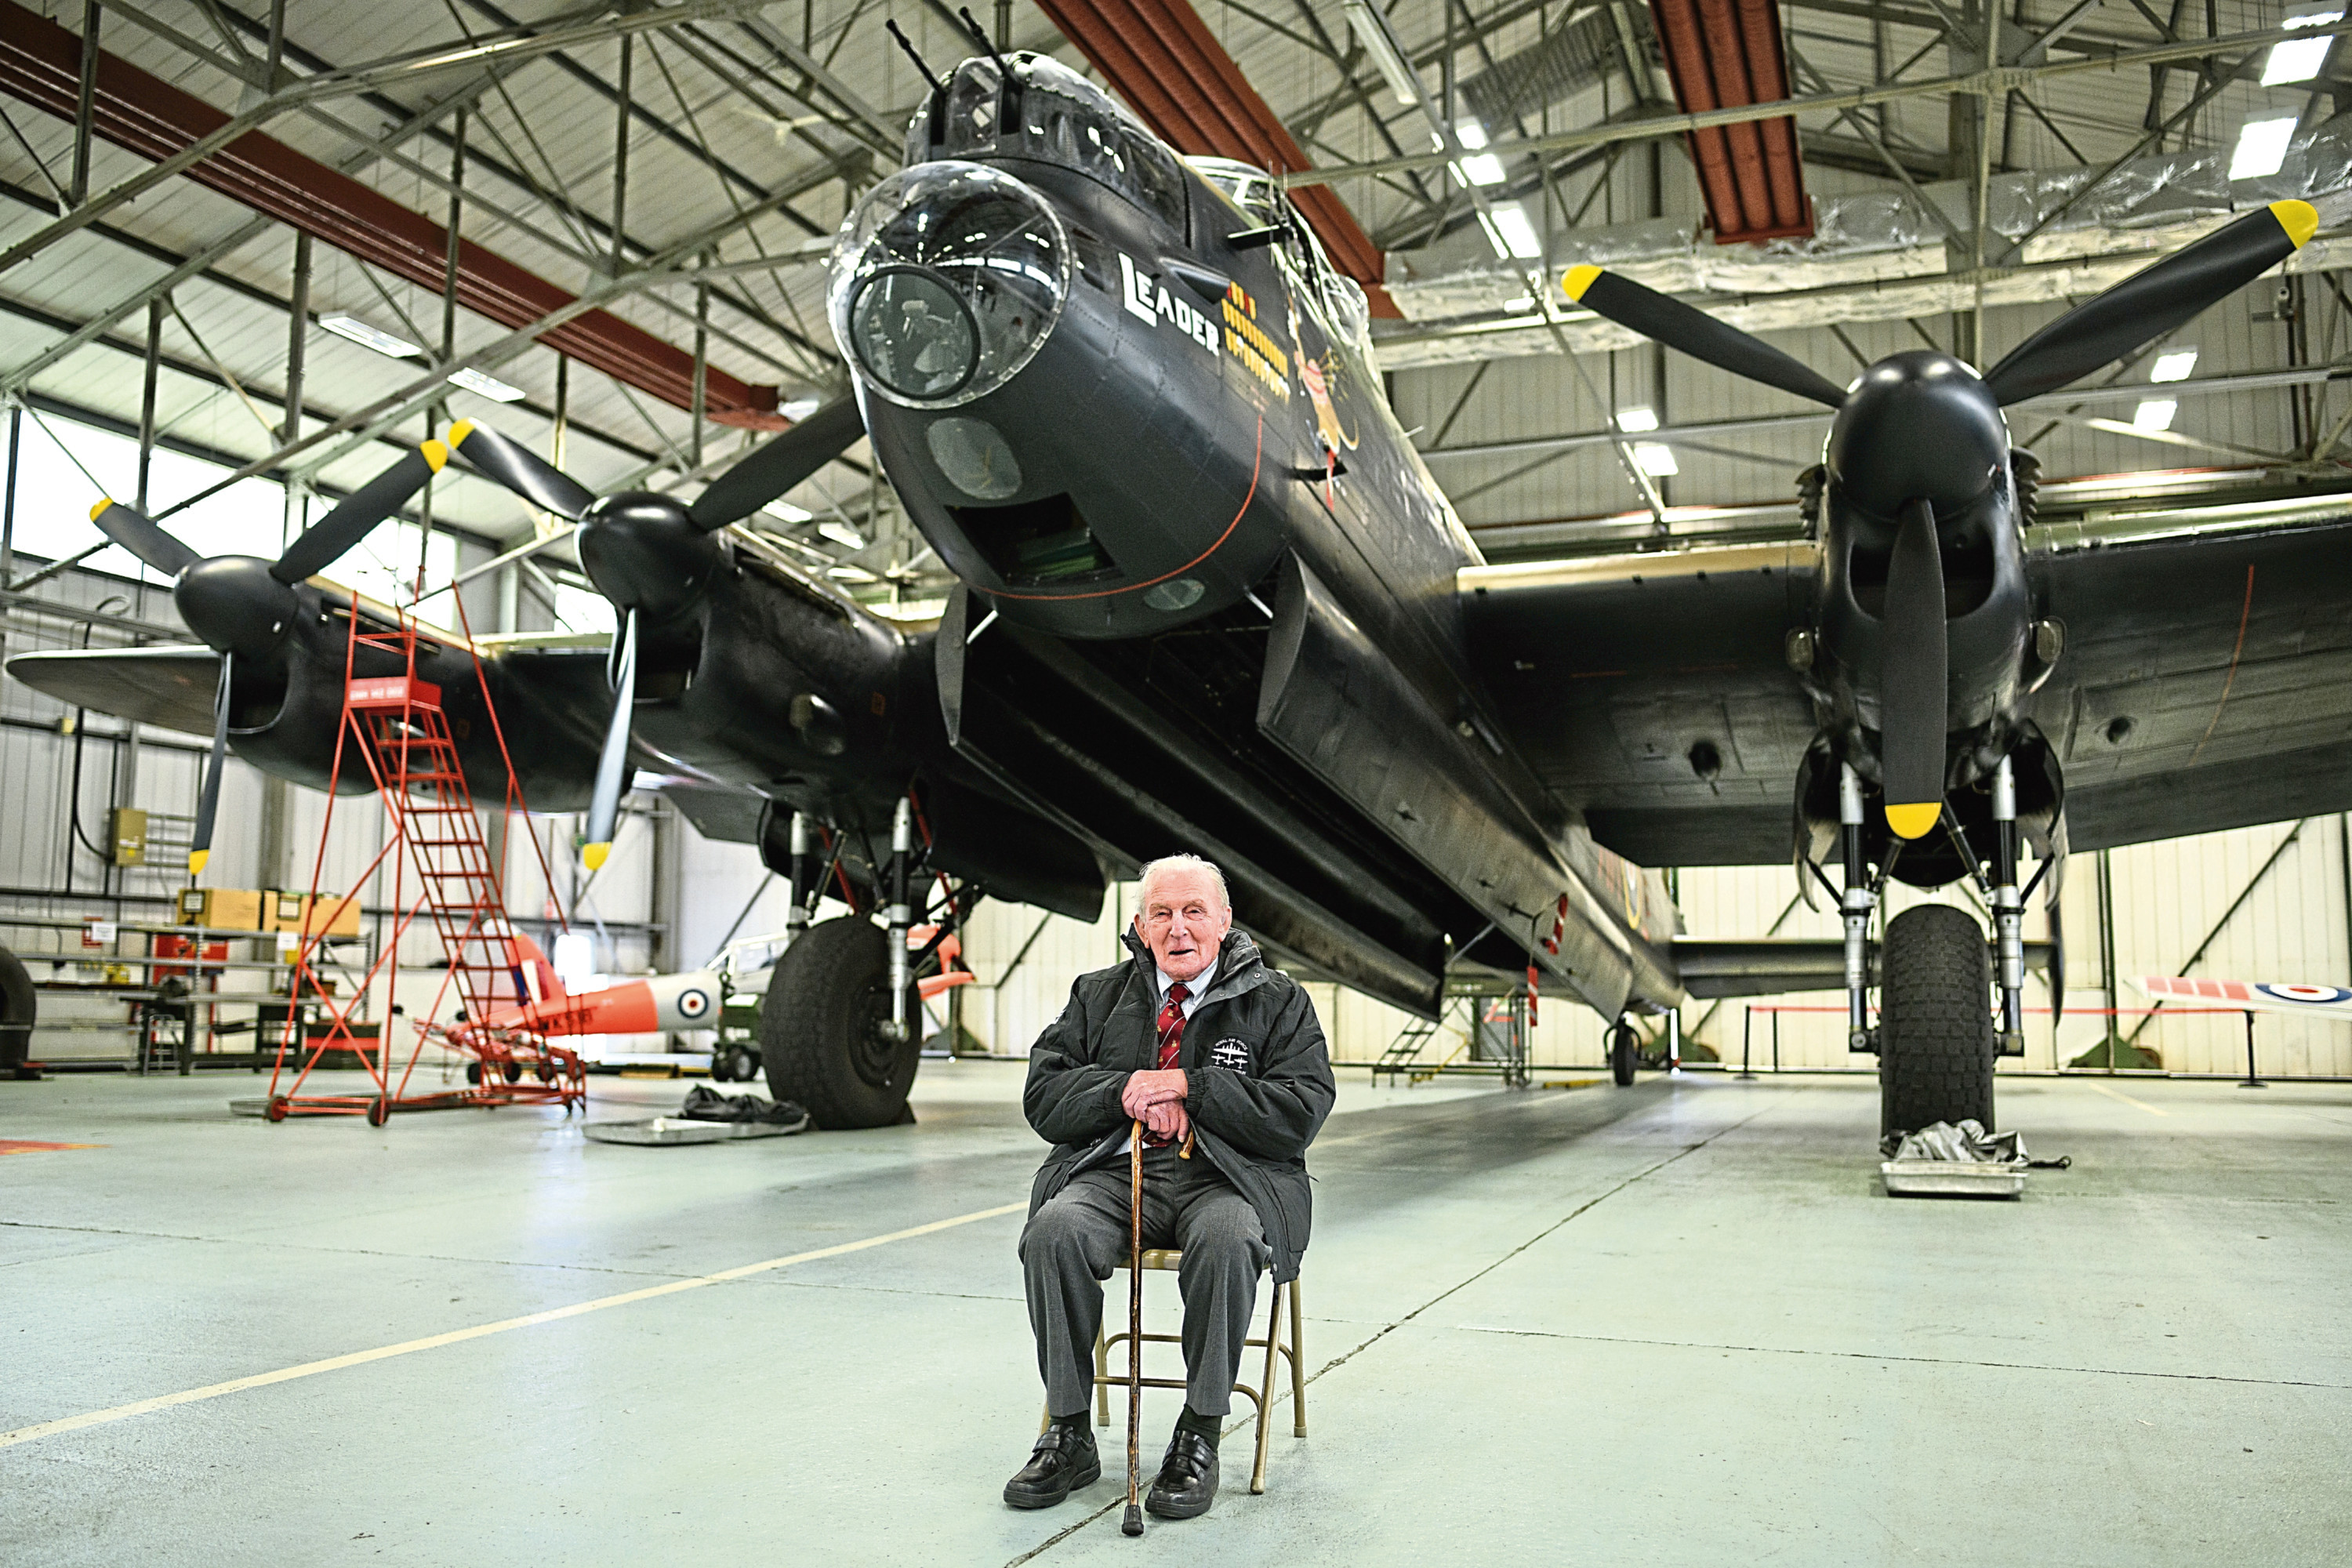 Britain's last surviving Dambuster, Squadron Leader George 'Johnny' Johnson, poses for a photograph during an event to mark the 75th anniversary of the Dambusters raid.